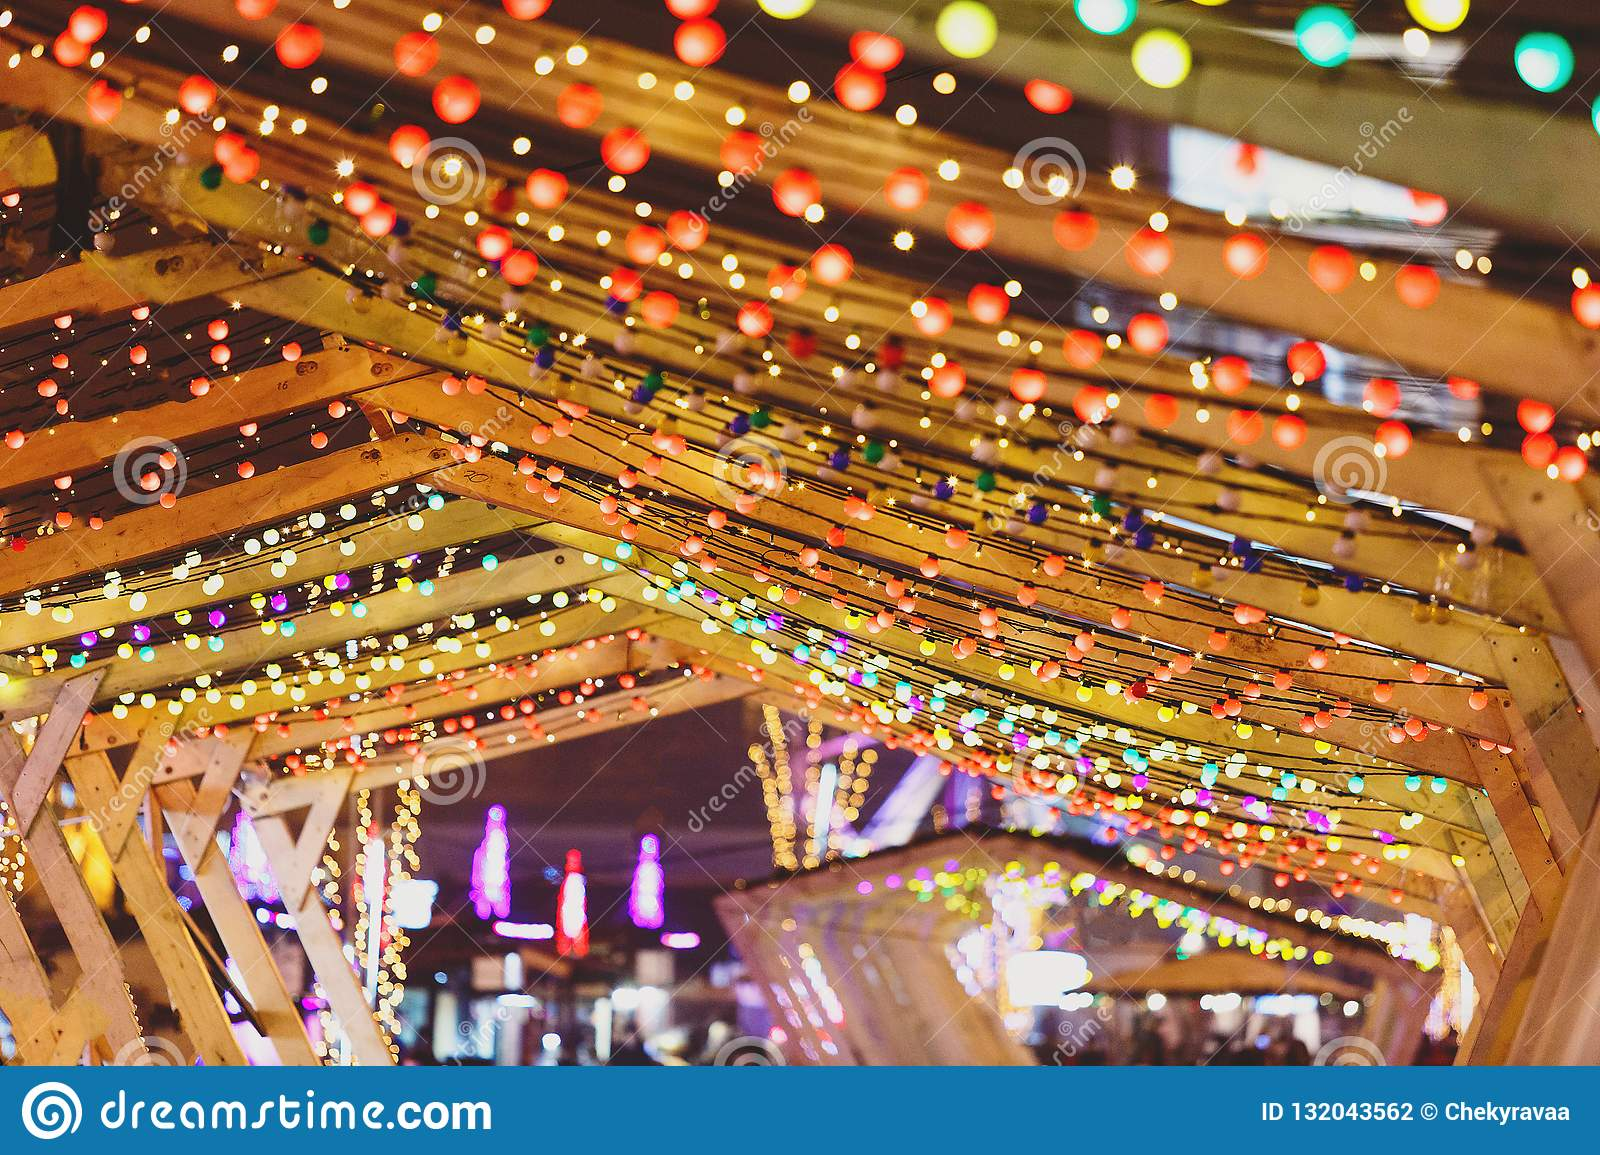 Christmas Lighted Garlands.Christmas Lights And Bulb Garlands On The City Streets New